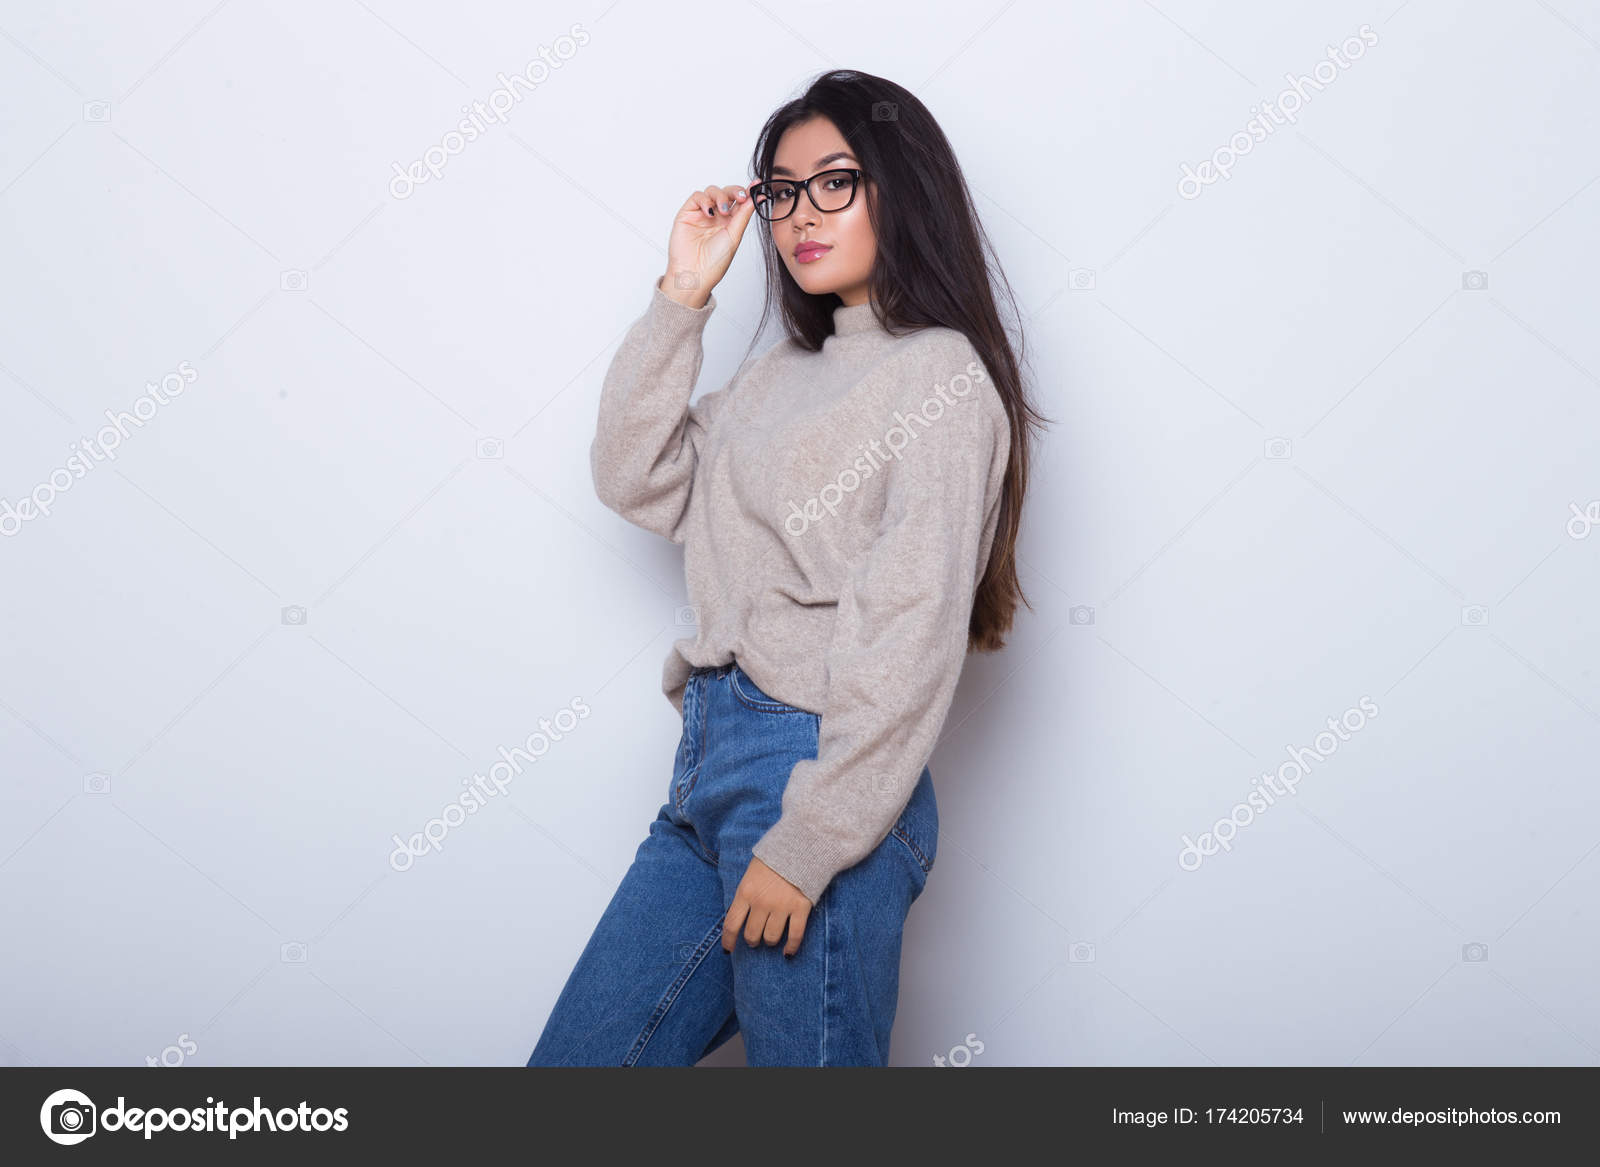 000a3a43f97 Young Asian girl hipster posing in glasses on her eyes in front of white  wall fashion portrait